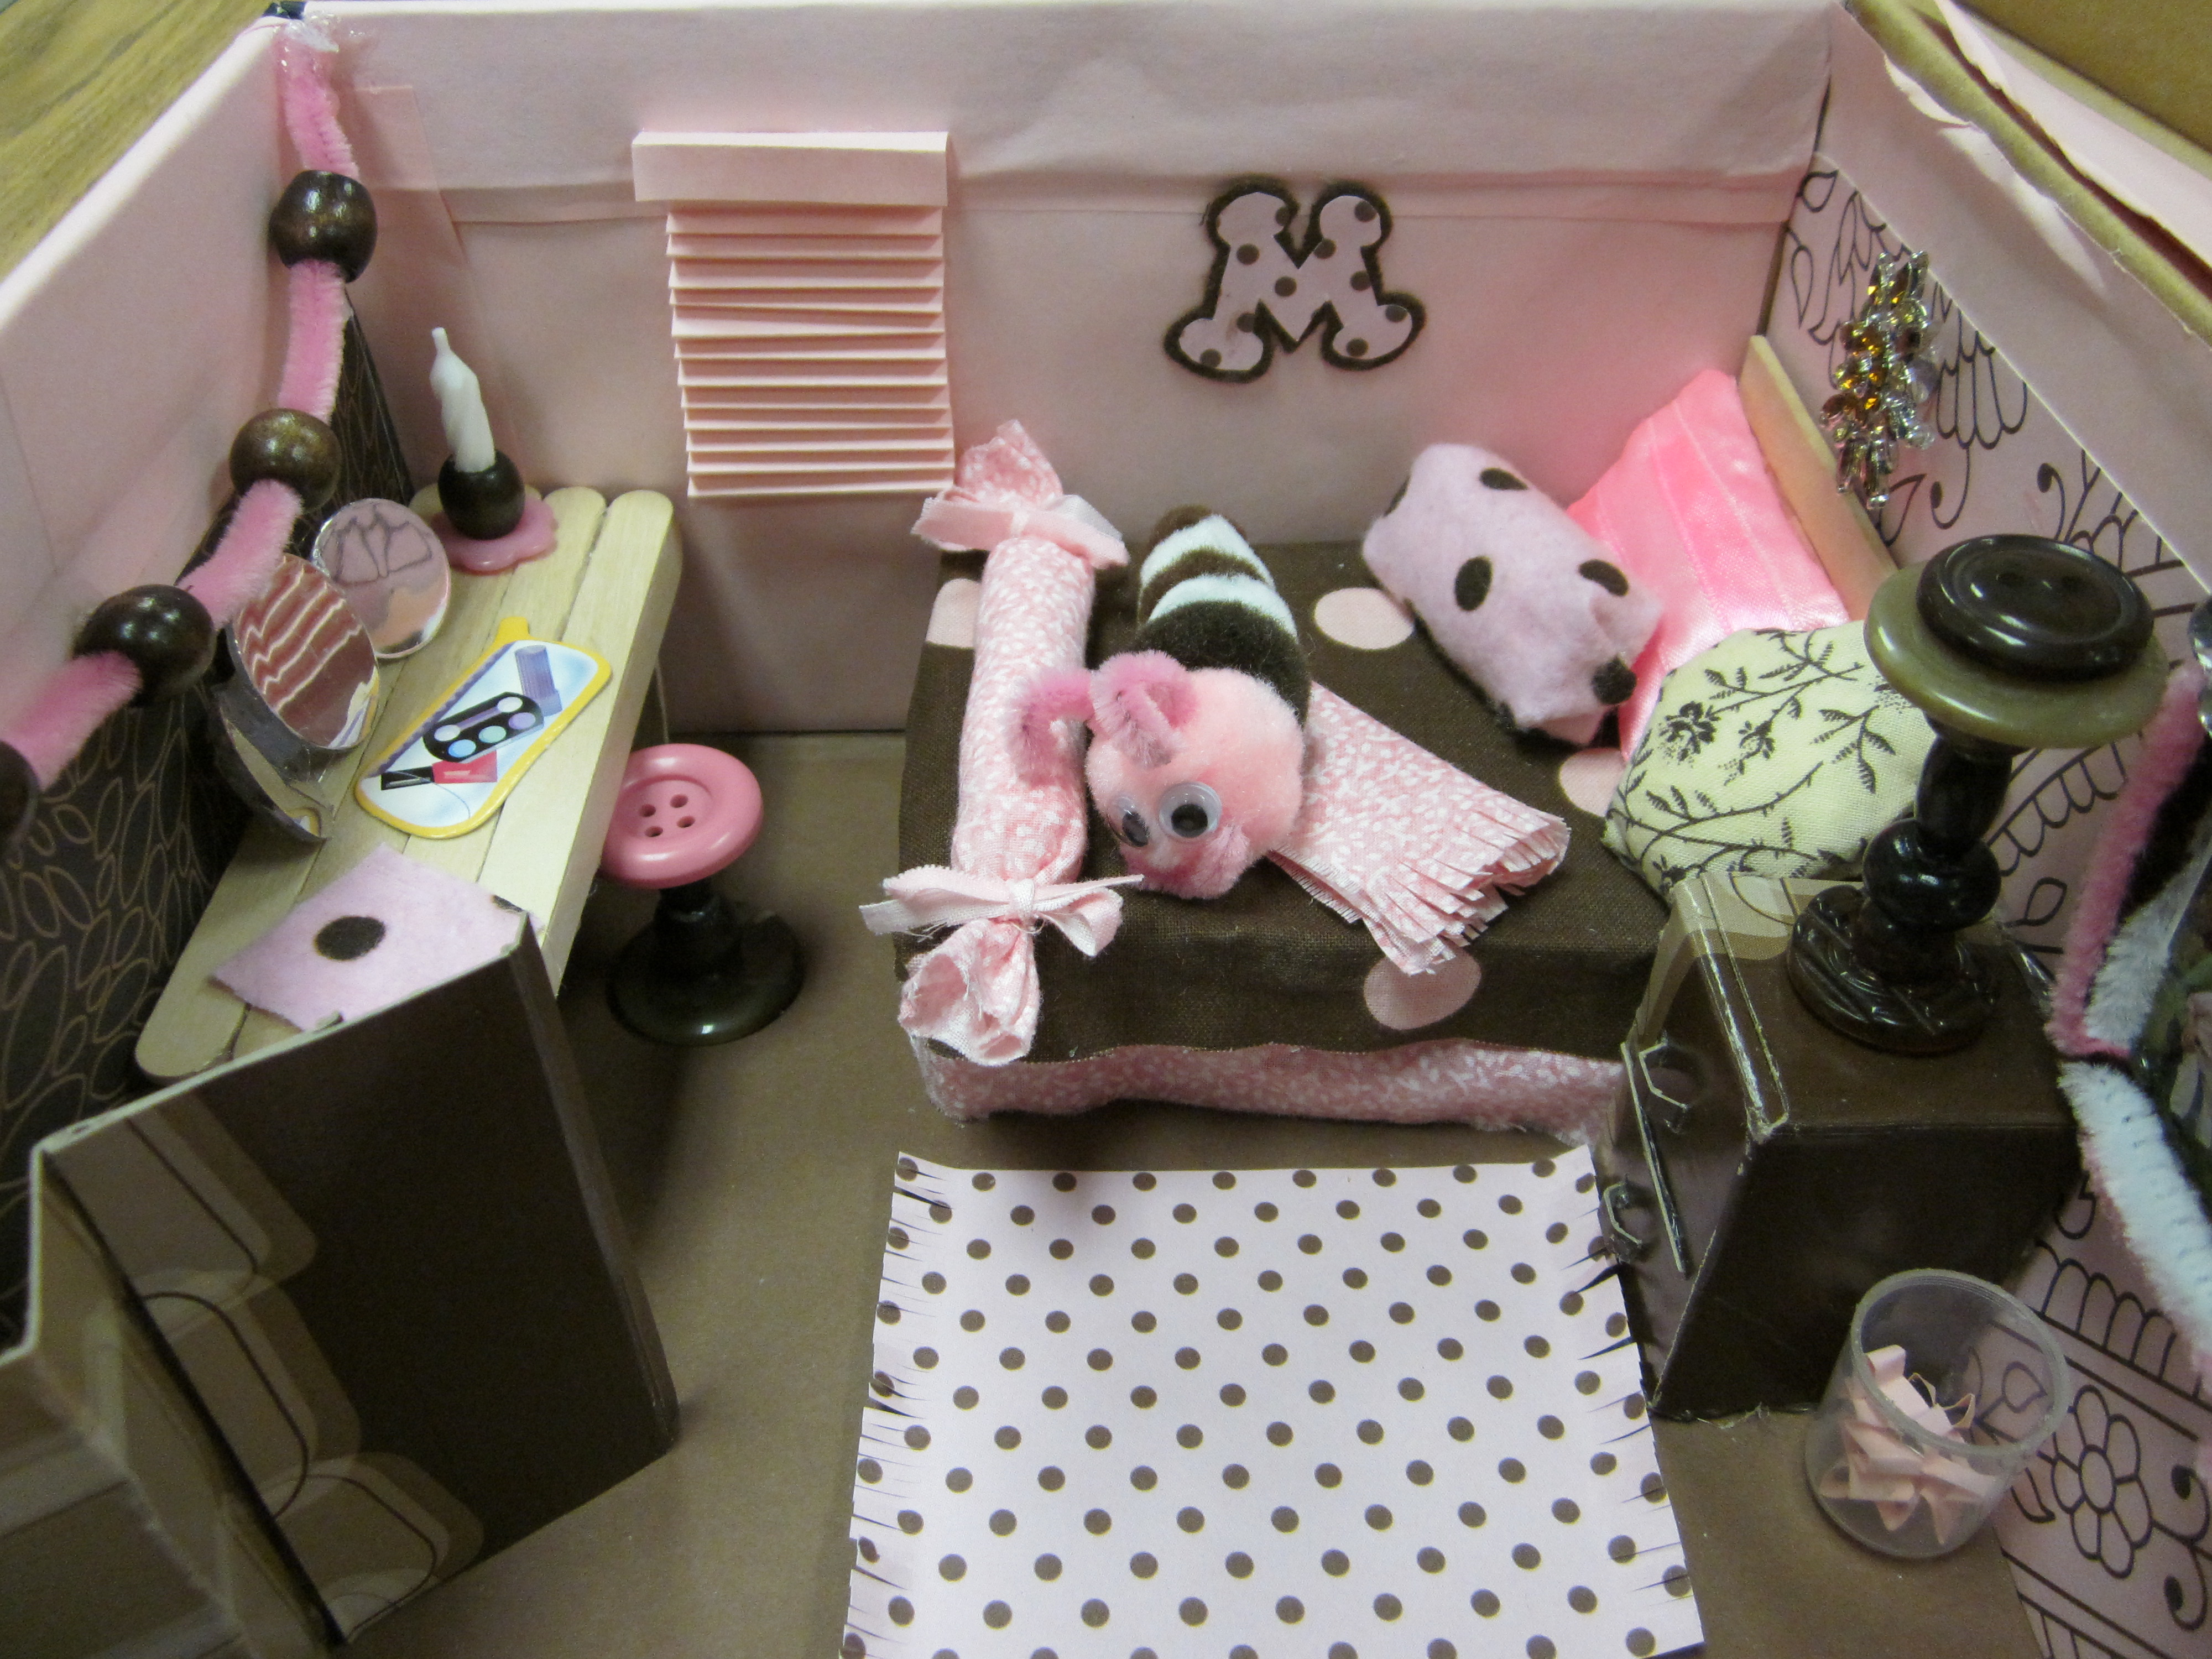 Shoe Box Room Design: Final Project